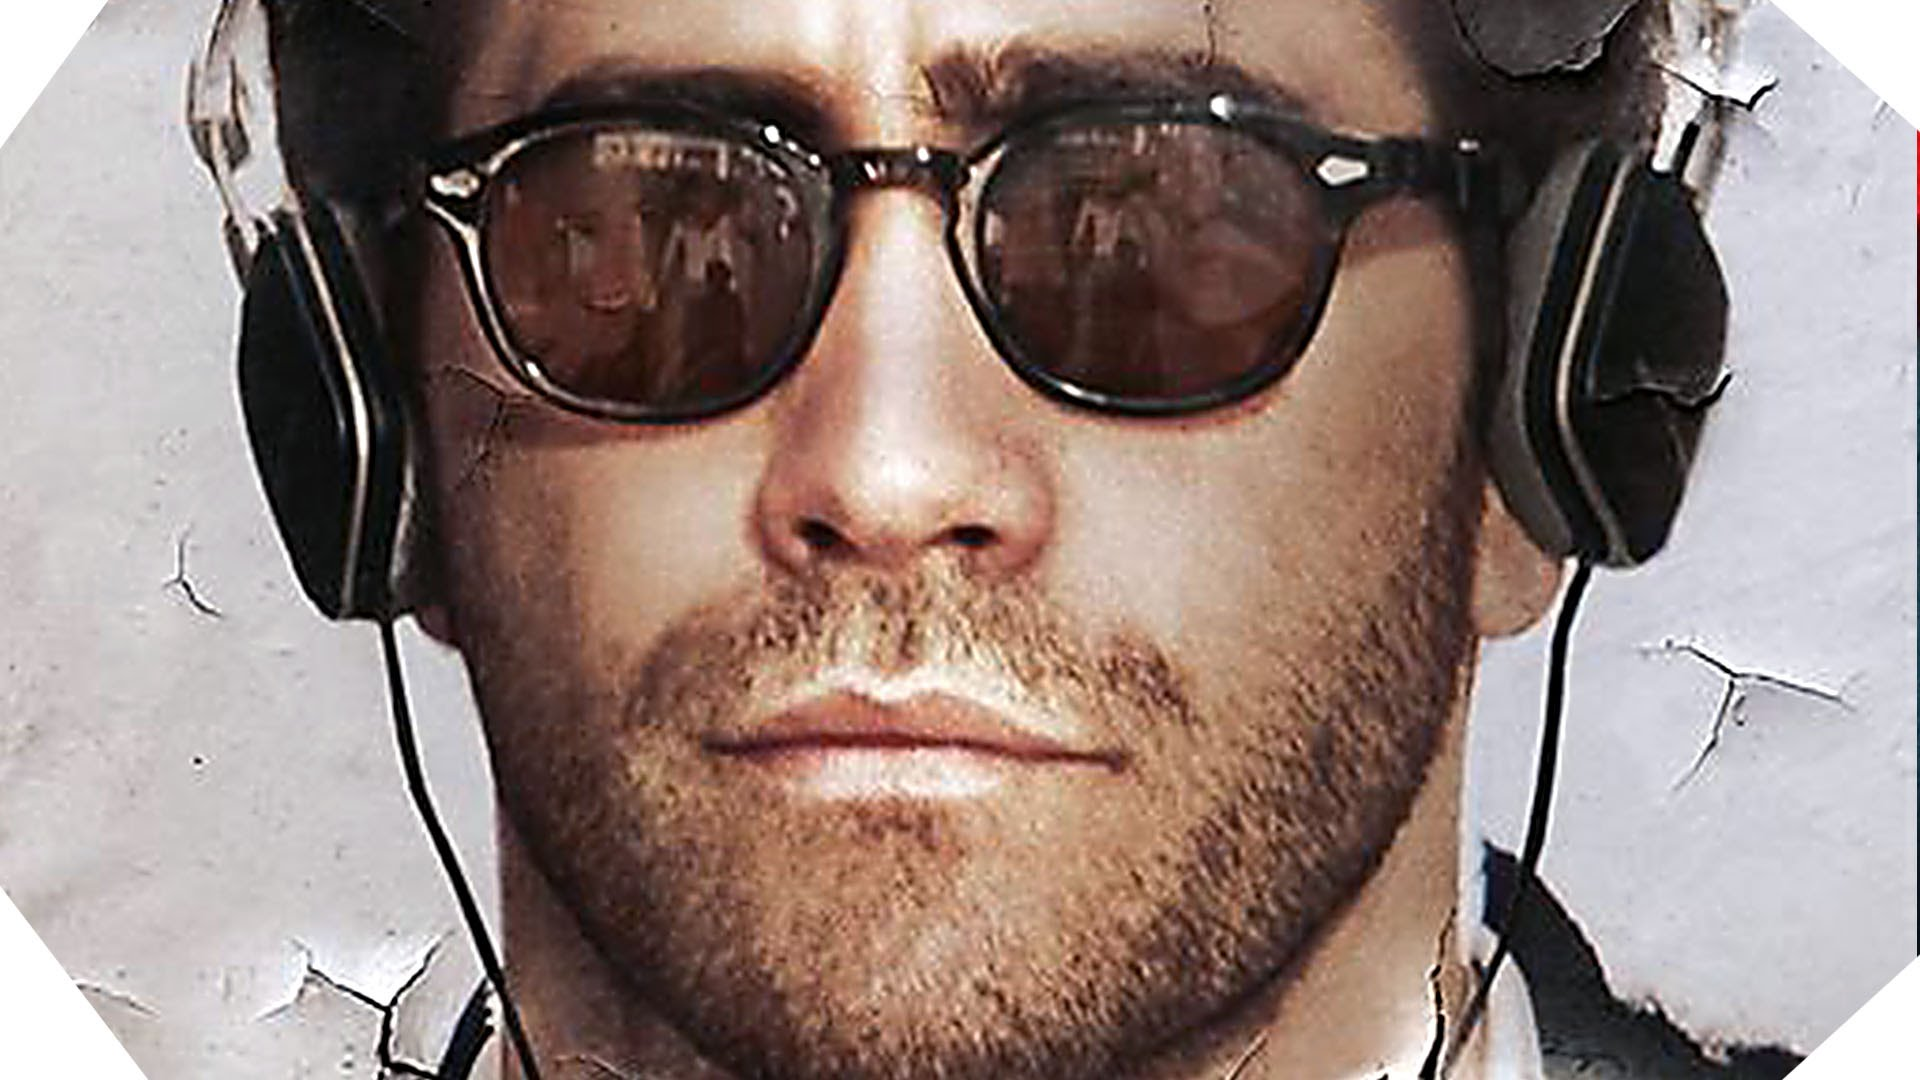 DEMOLITION - Film Jake Gyllenhaal Jean-Marc Vallée movie Image du film 5 - Go with the Blog